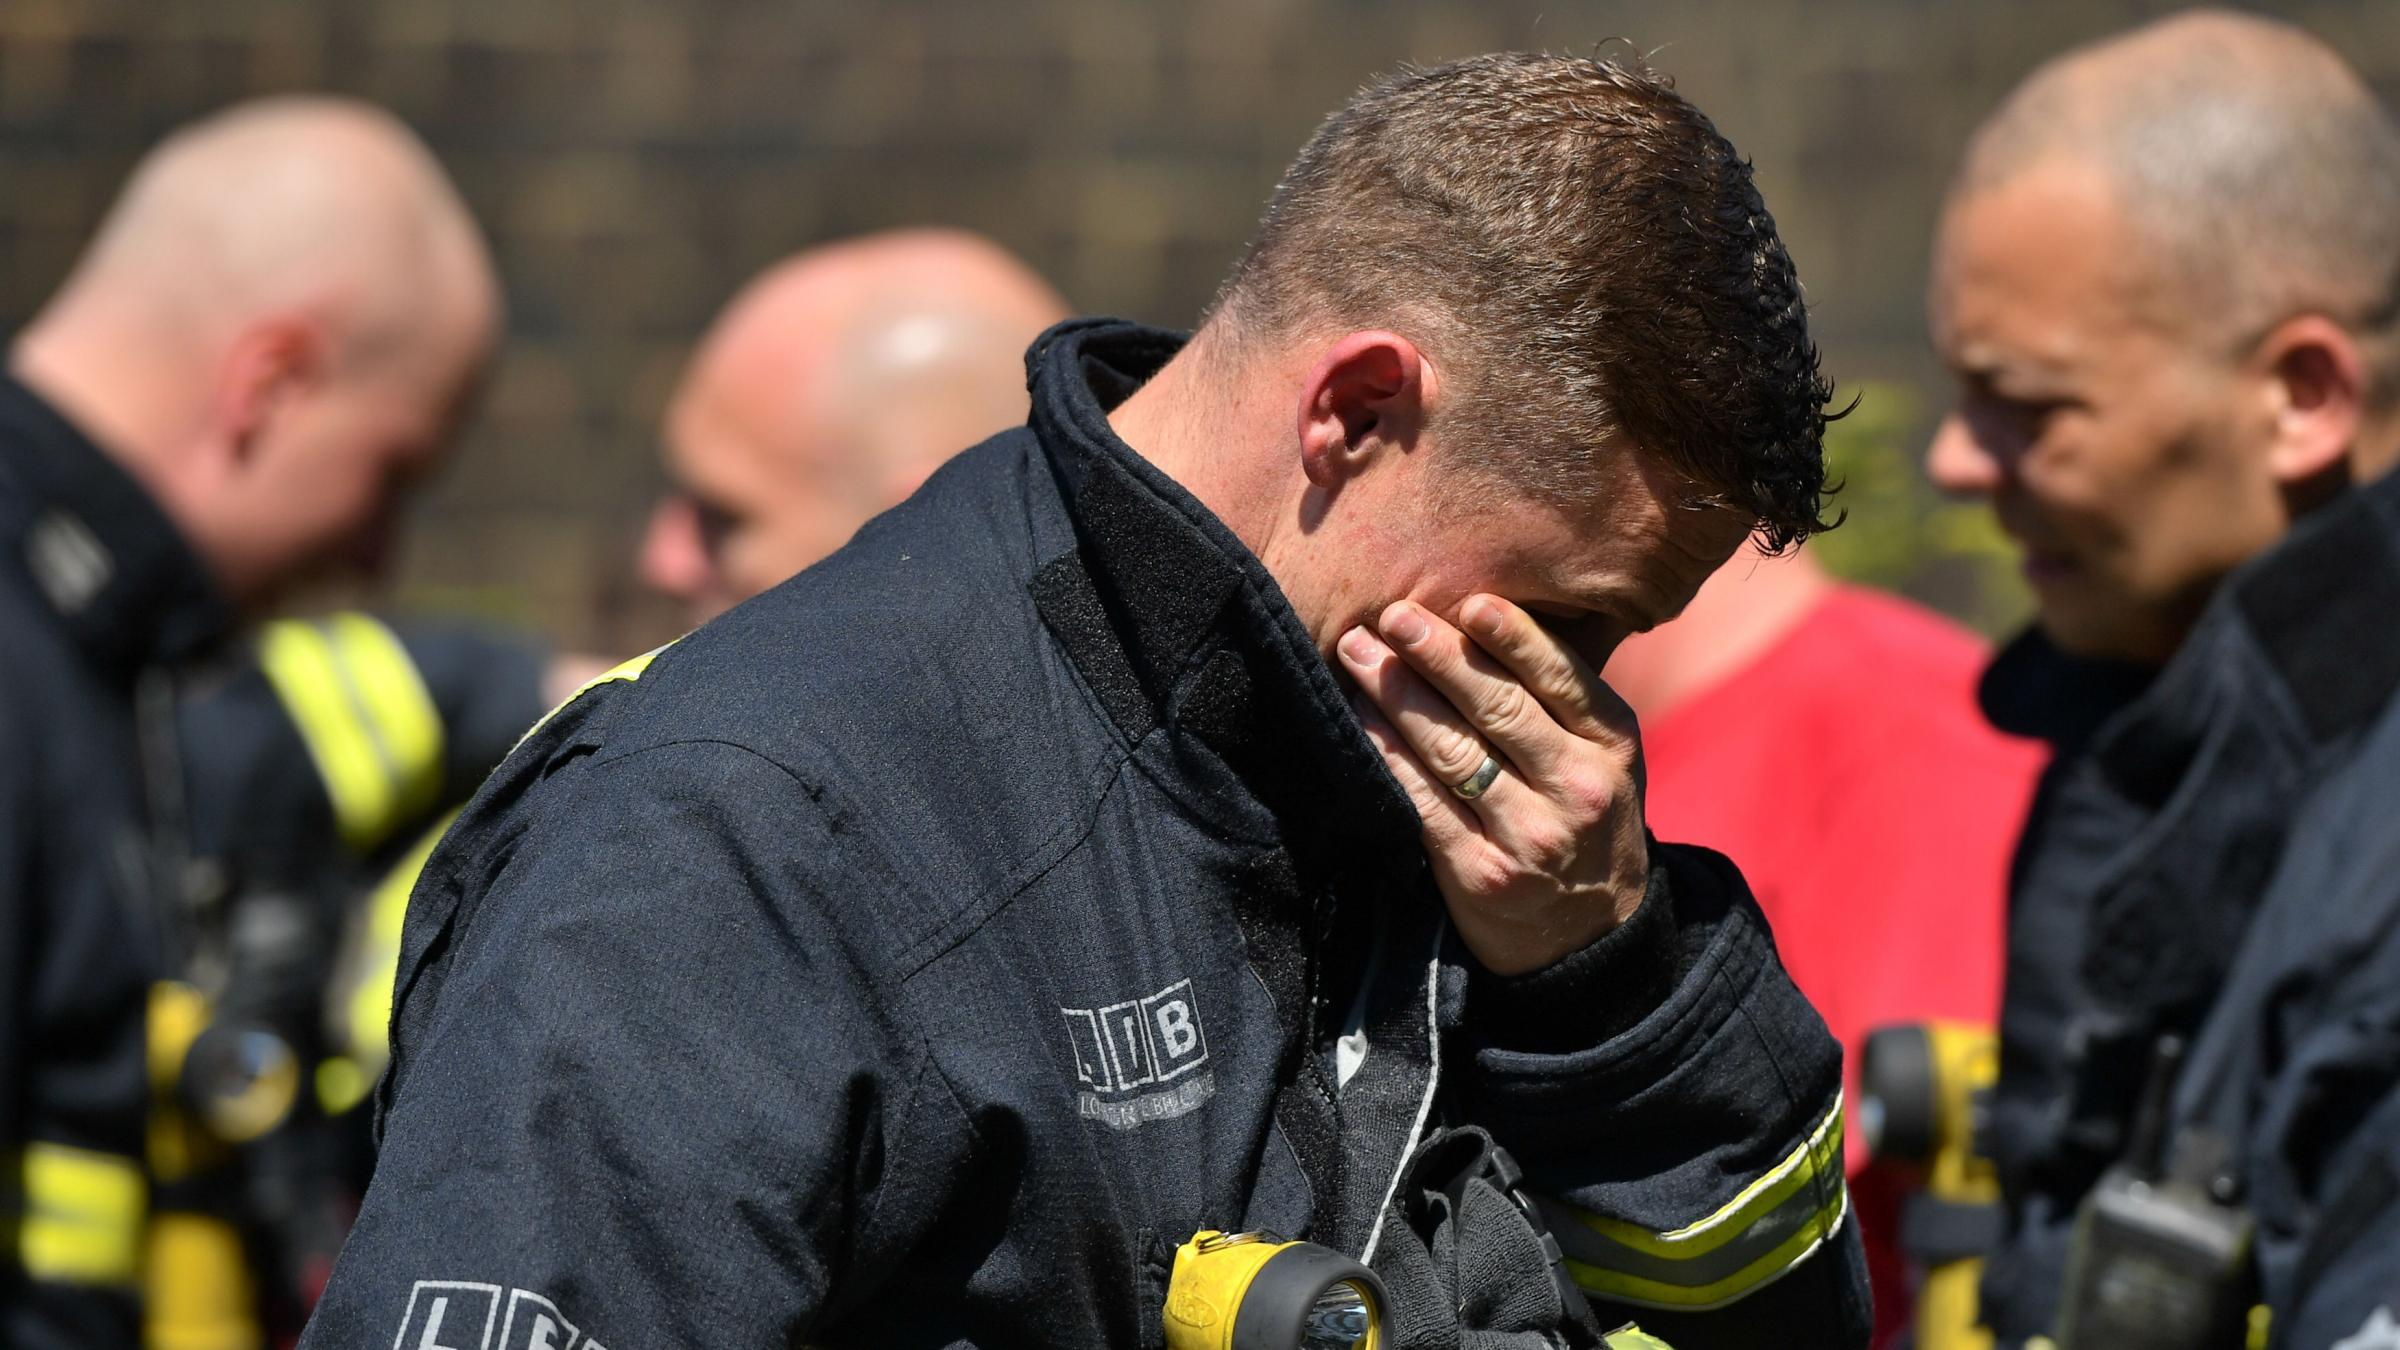 London fire death toll rises to 79